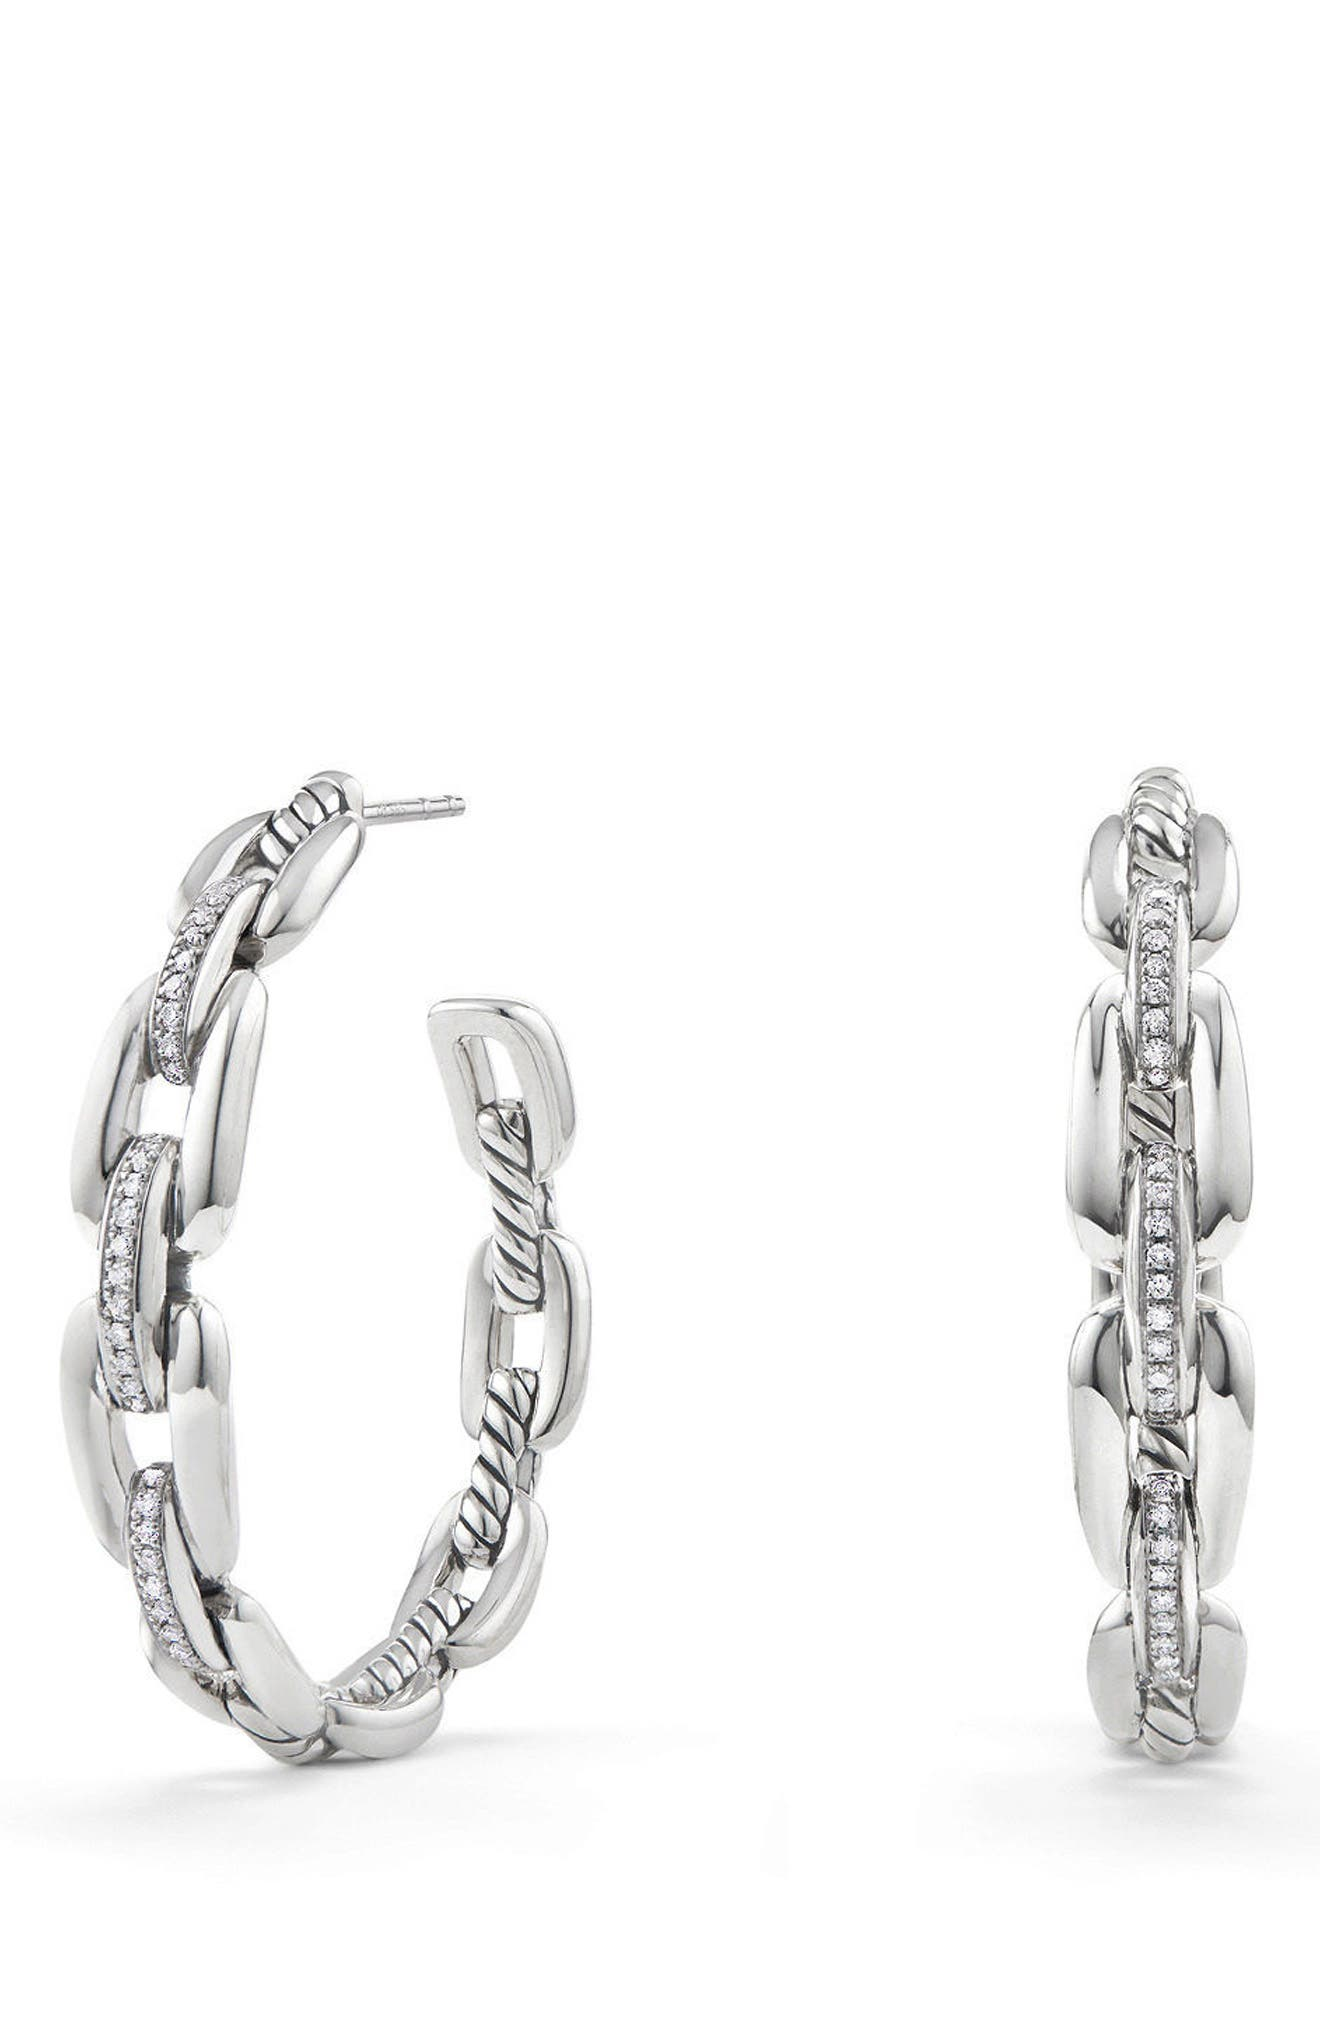 Alternate Image 1 Selected - David Yurman Wellesley 23mm Hoop Earrings with Diamonds